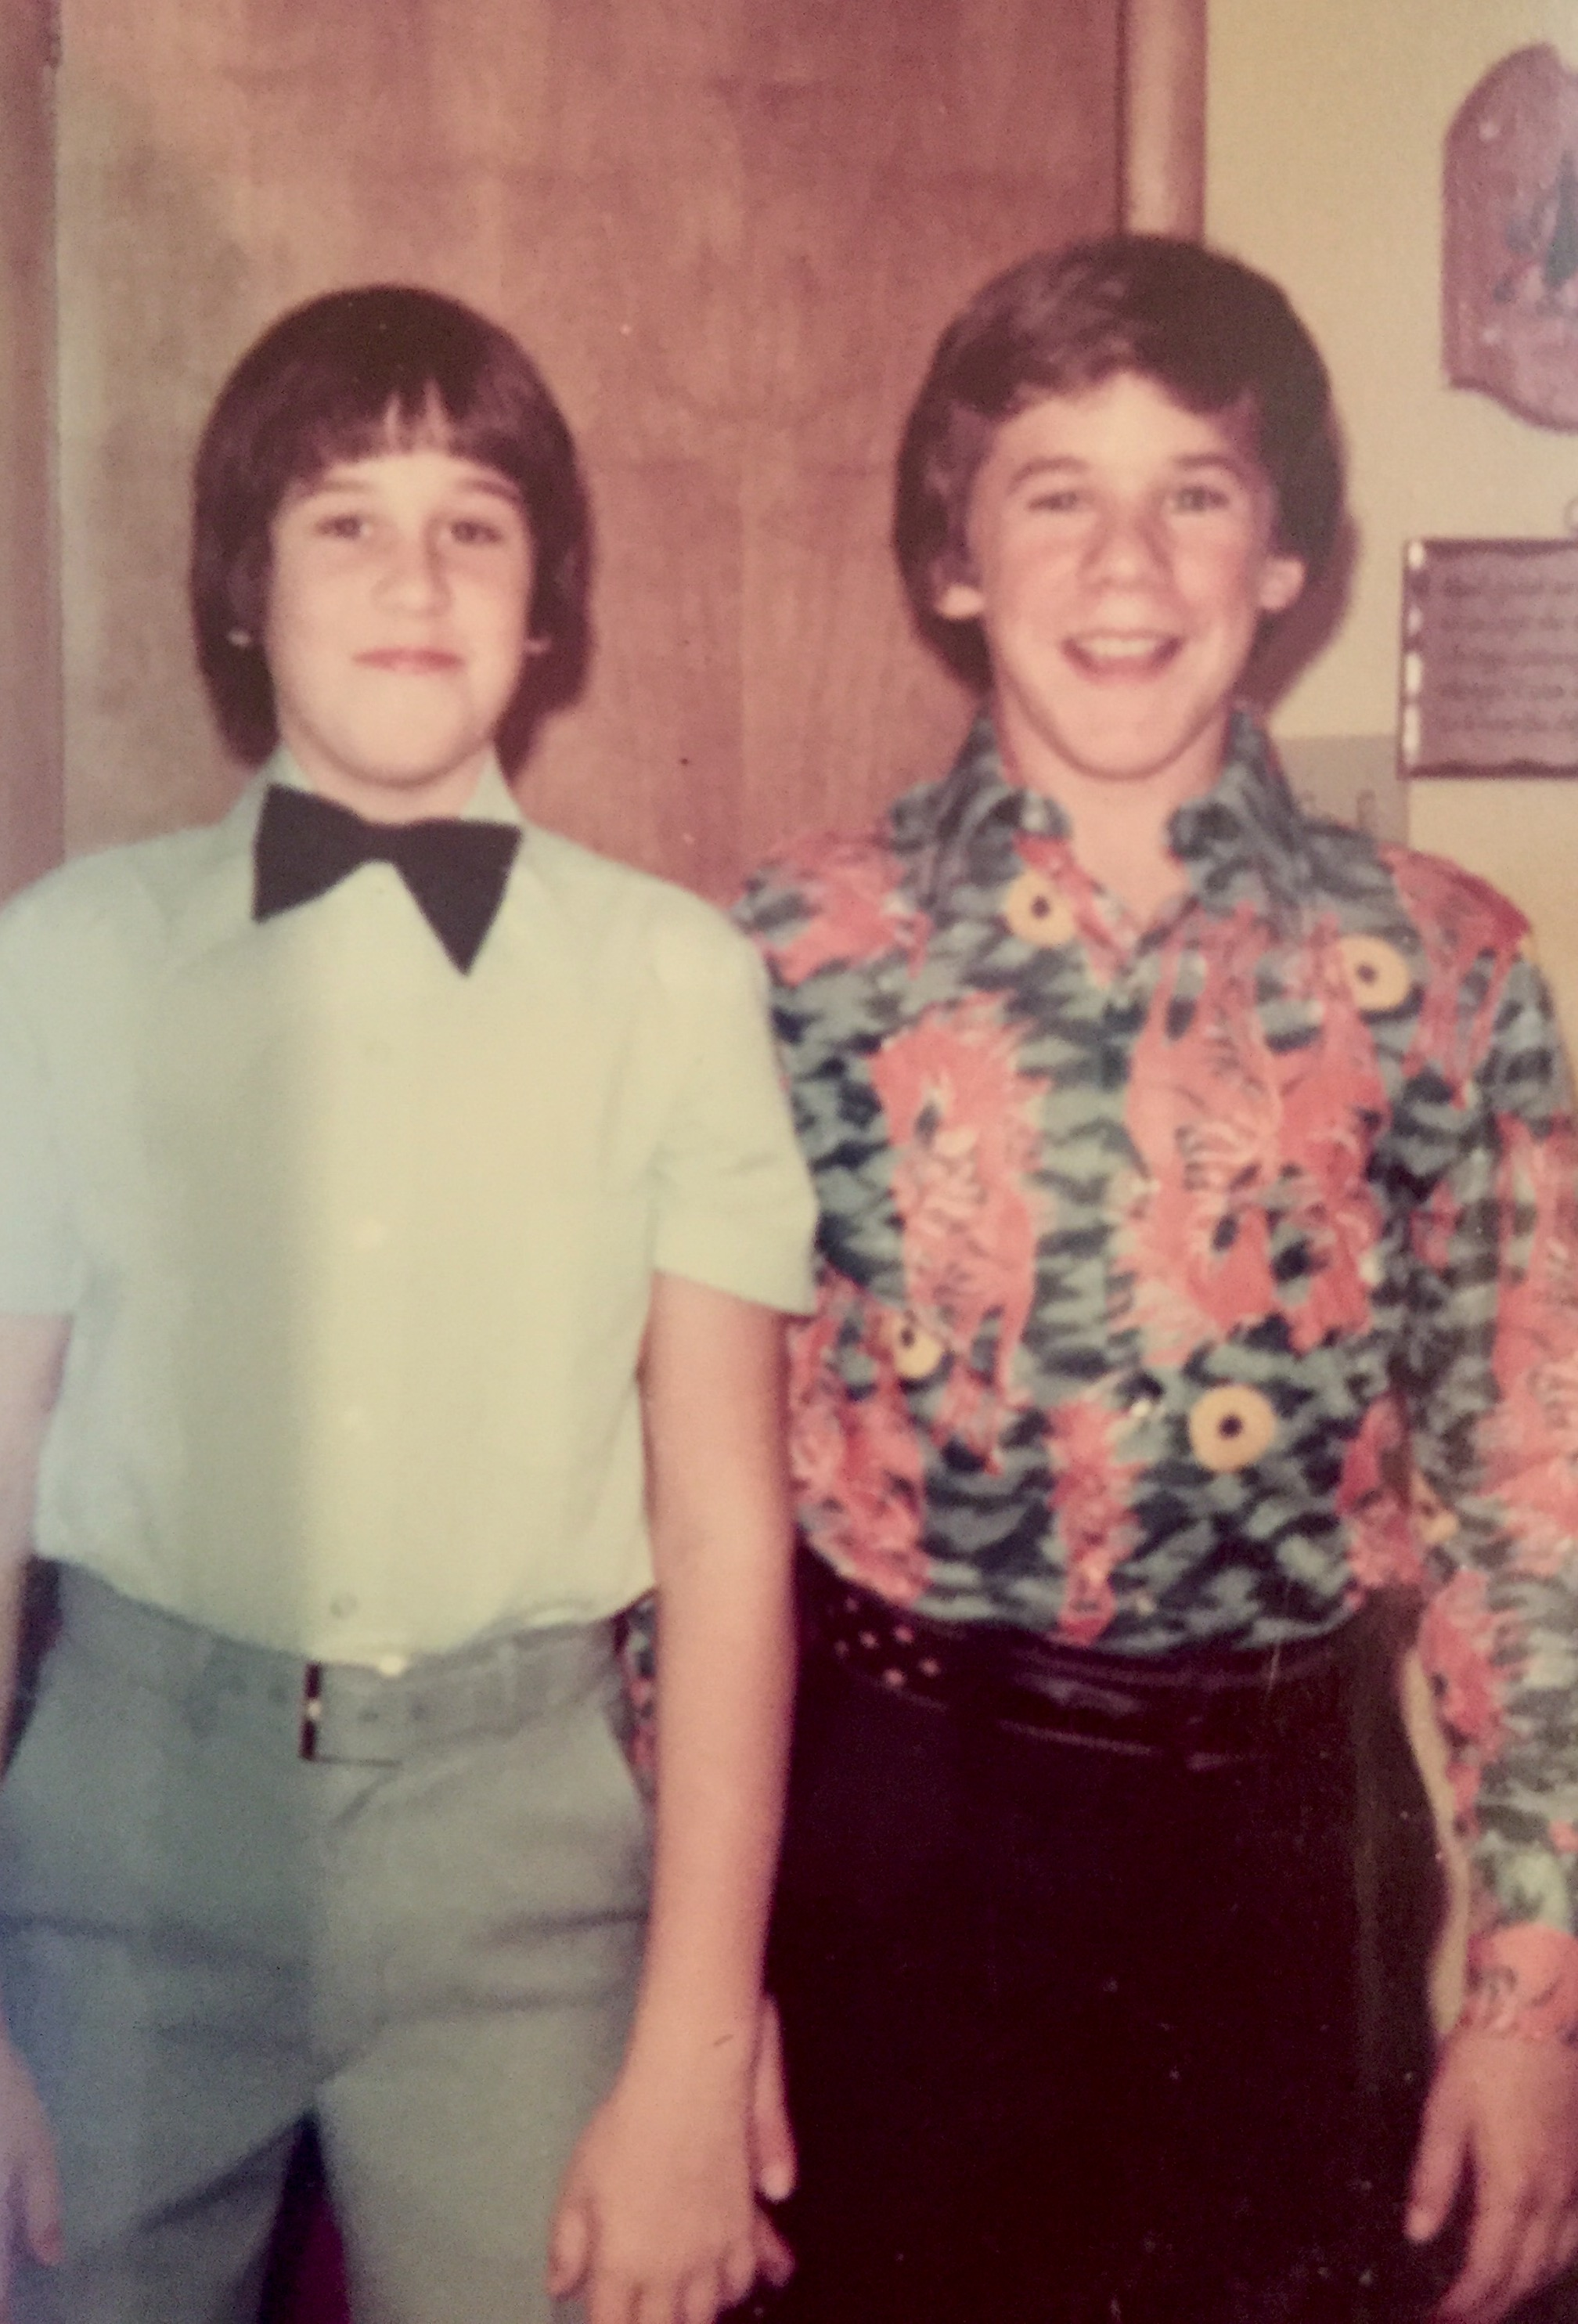 Preteen Sansabelt. With my much cooler, open-collared, neighborhood friend, Darren. I suppose that later, he danced with cute girls to a Carpenters song or two. Circa 1975.